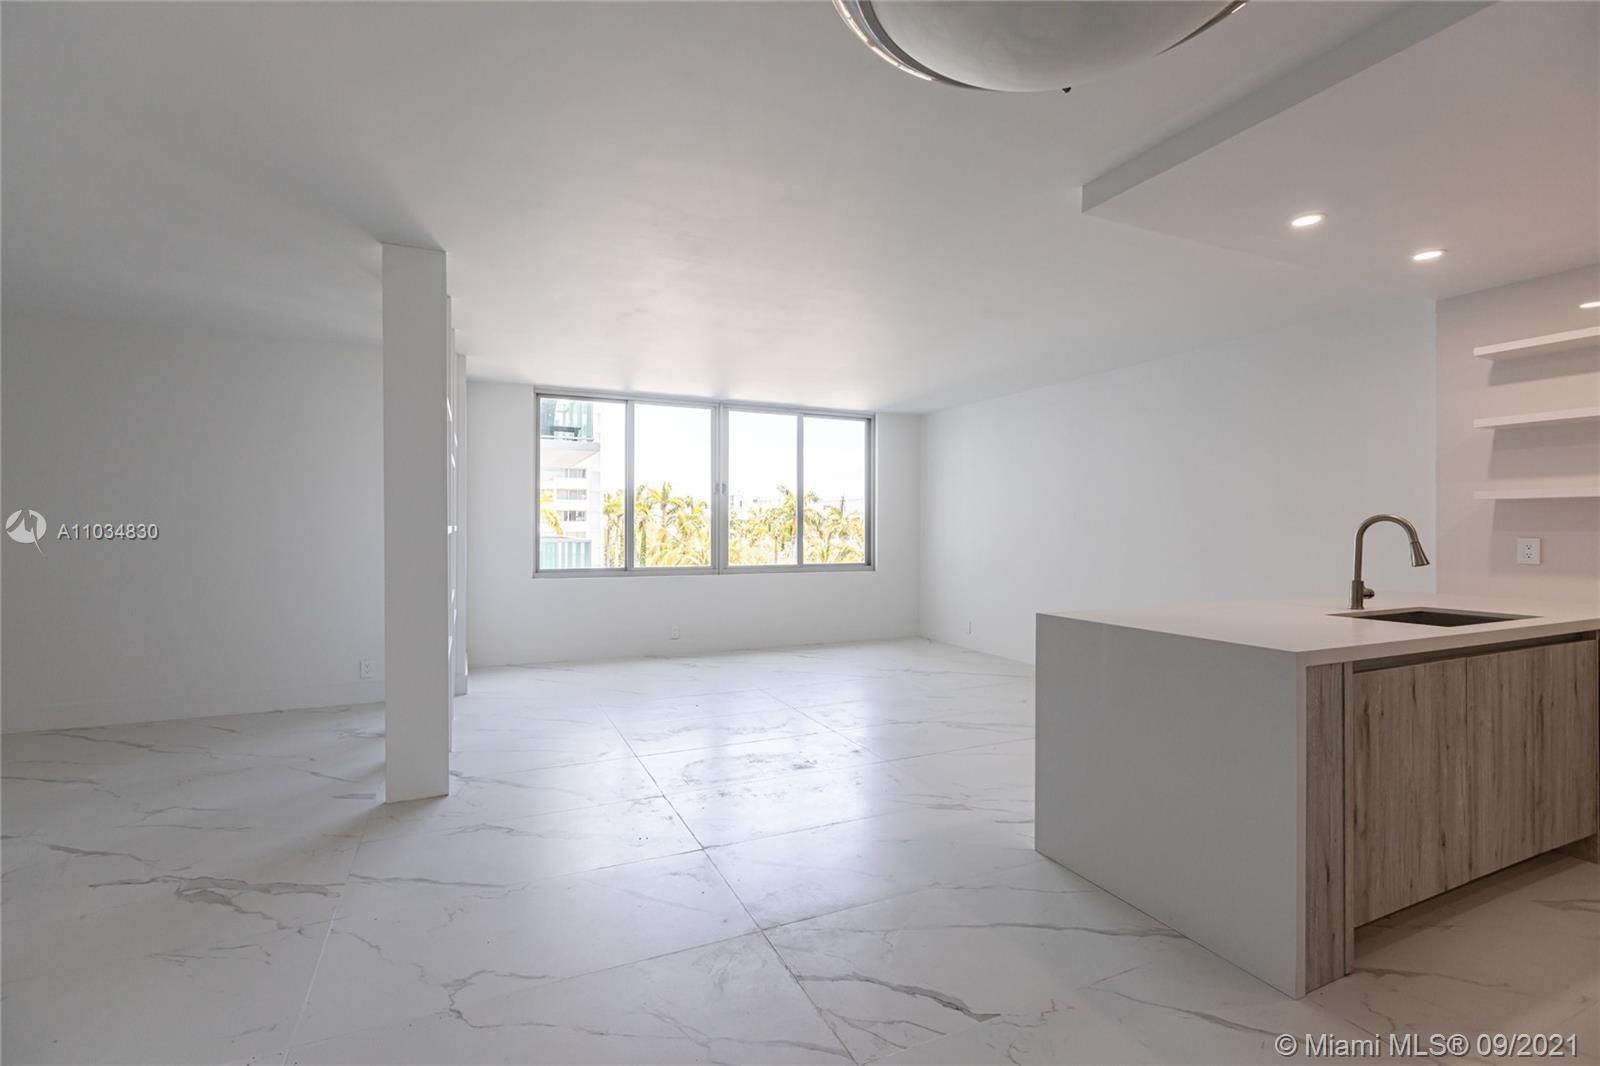 Completely remodeled unit, gut renovation,ULTRA MODERN, NEVER LIVED IN, estimated completion June 1st. Hurricane impact windows, window treatments, open kitchen, recessed lighting, porcelain marble floors, caesar stone countertops, stainless steel appliances, custom cabinets, nest thermostat & door locks (see renderings). 24 hour valet and security. The Mirador 1000 is Full Service Building with Exceptional Amenities: Interior lobby and pool deck currently under construction (see renderings) Convenience Store, 5000sf Fitness Center w/ Sauna, Large Pool and Jacuzzi. Pool Deck with Bar-B-Que Grill. Internet and cable are included in the Association Fee.  Valet $65 per month 1st car, $100 for 2nd car (Owner will give $1200 valet credit) Lobby under renovation, see renderings.